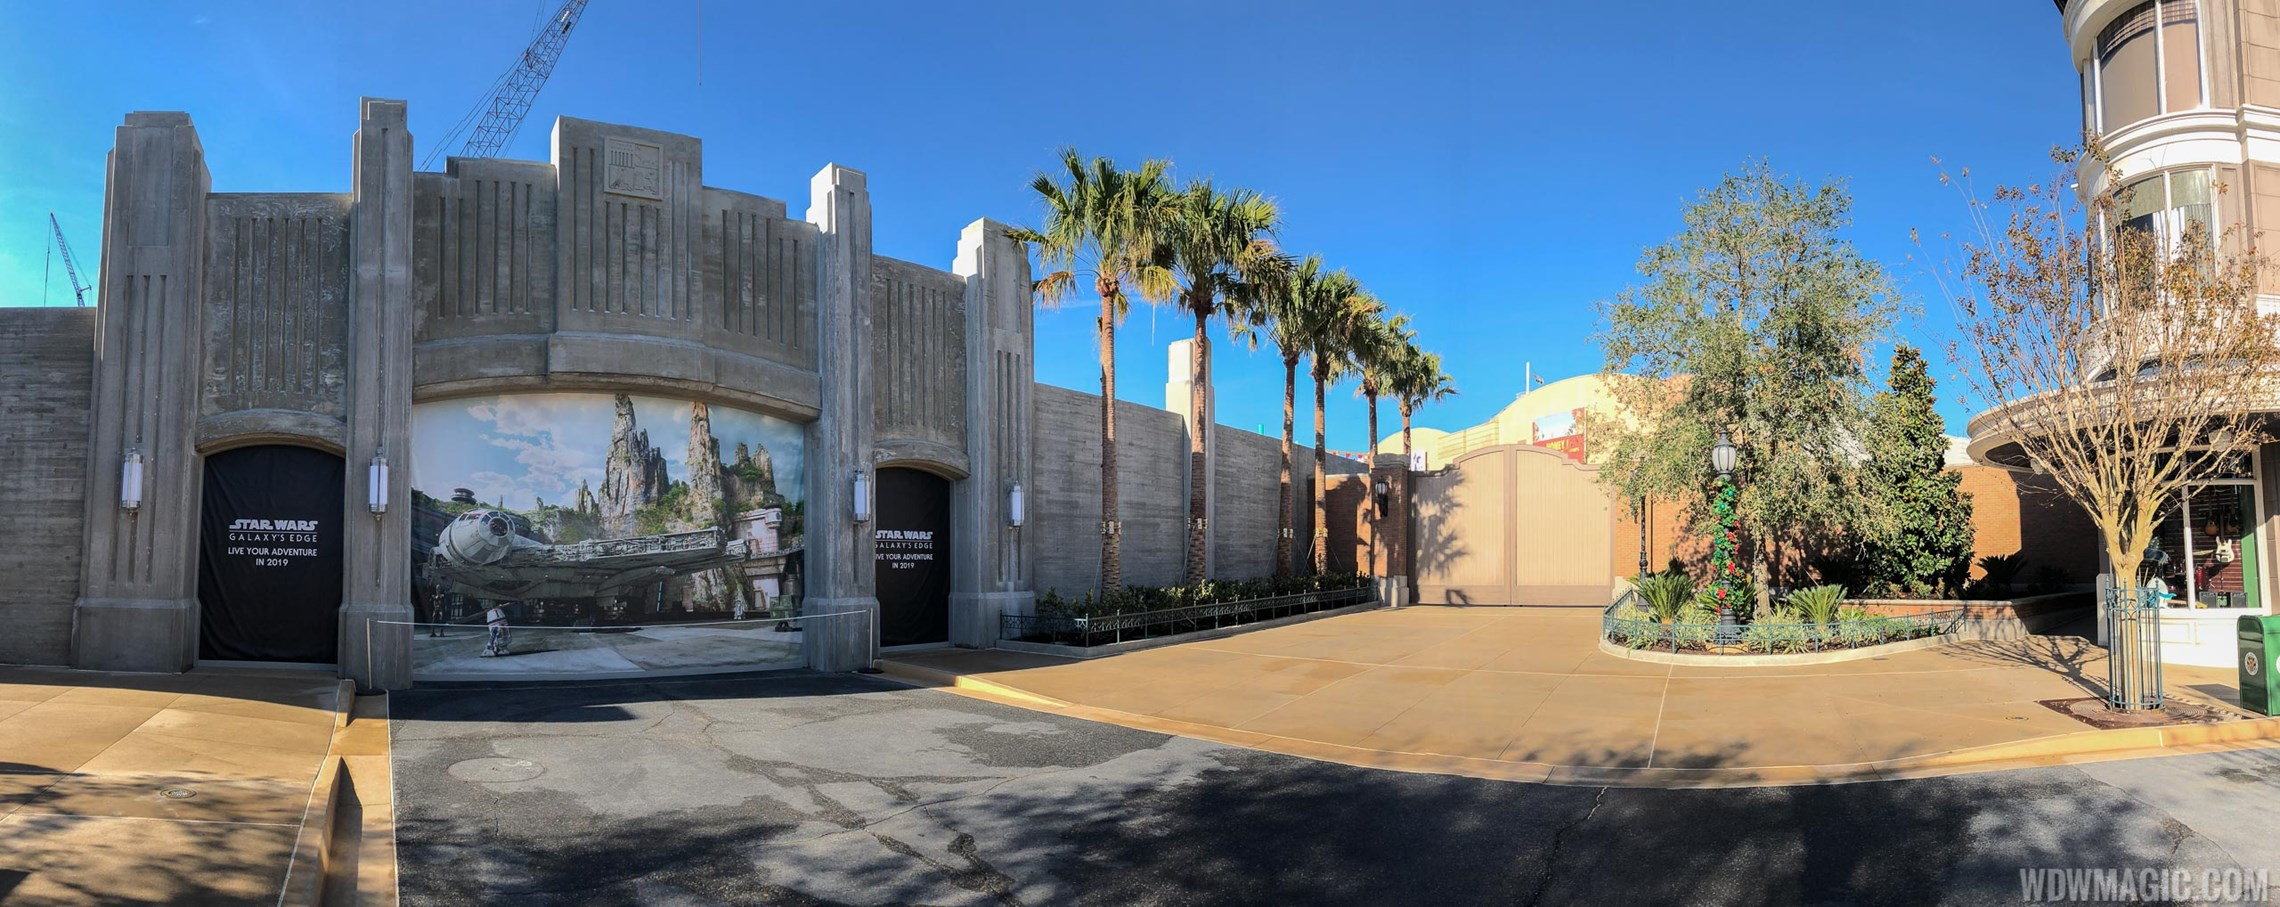 PHOTOS - All walls down at Grand Avenue reveal the entrances to Star Wars Galaxy's Edge